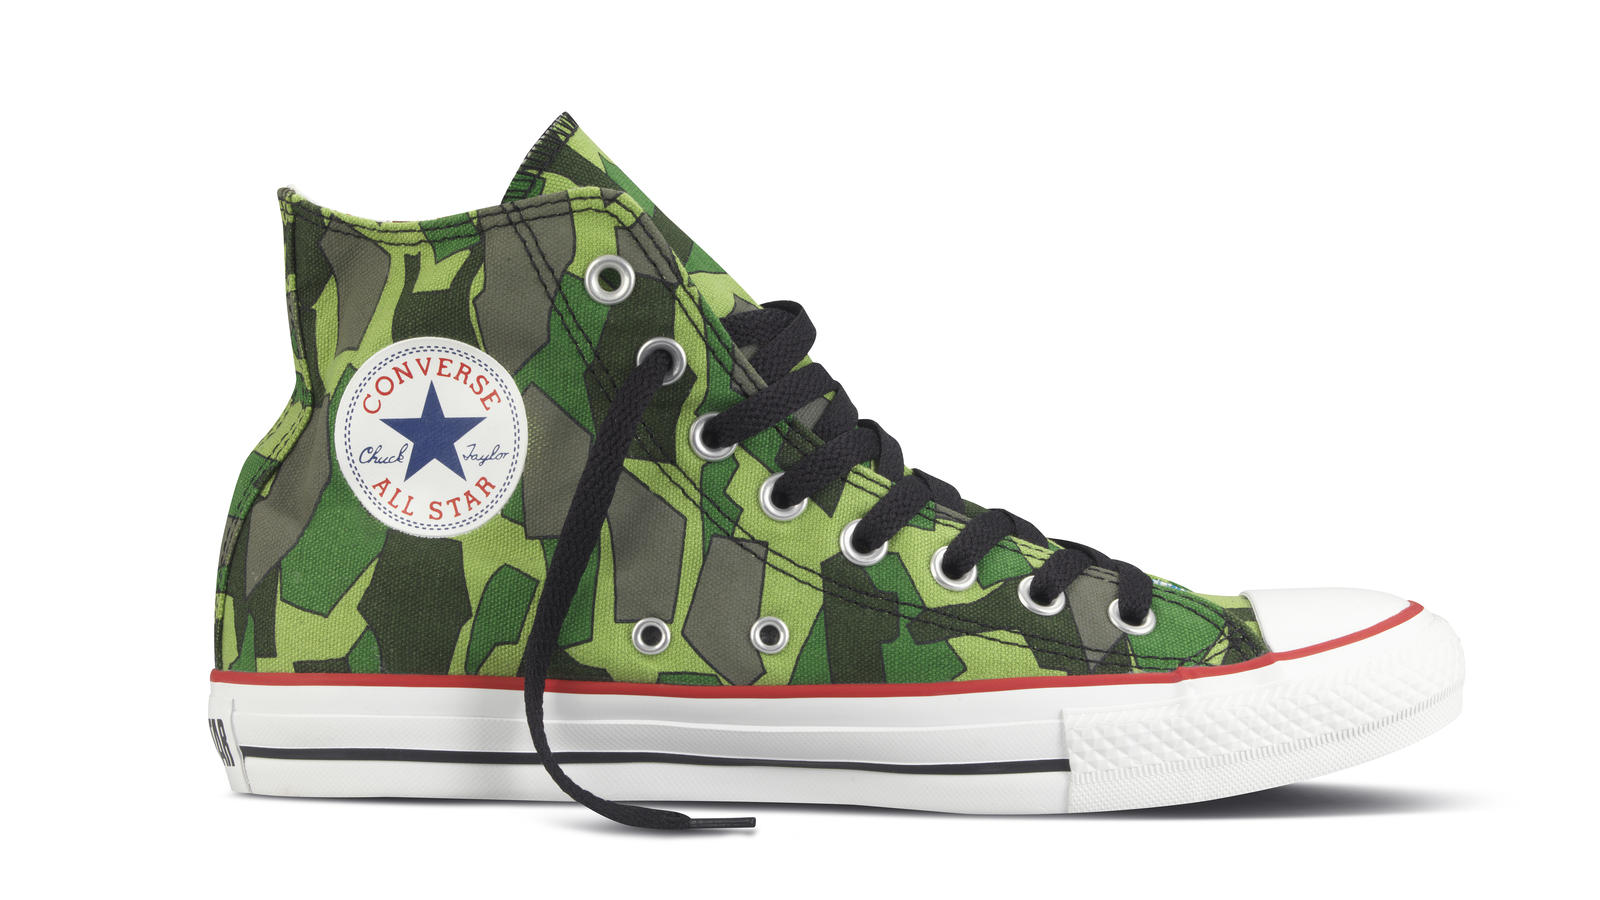 Converse Unveils Spring 2012 Footwear Collection With Virtual Band ... 5e306145f